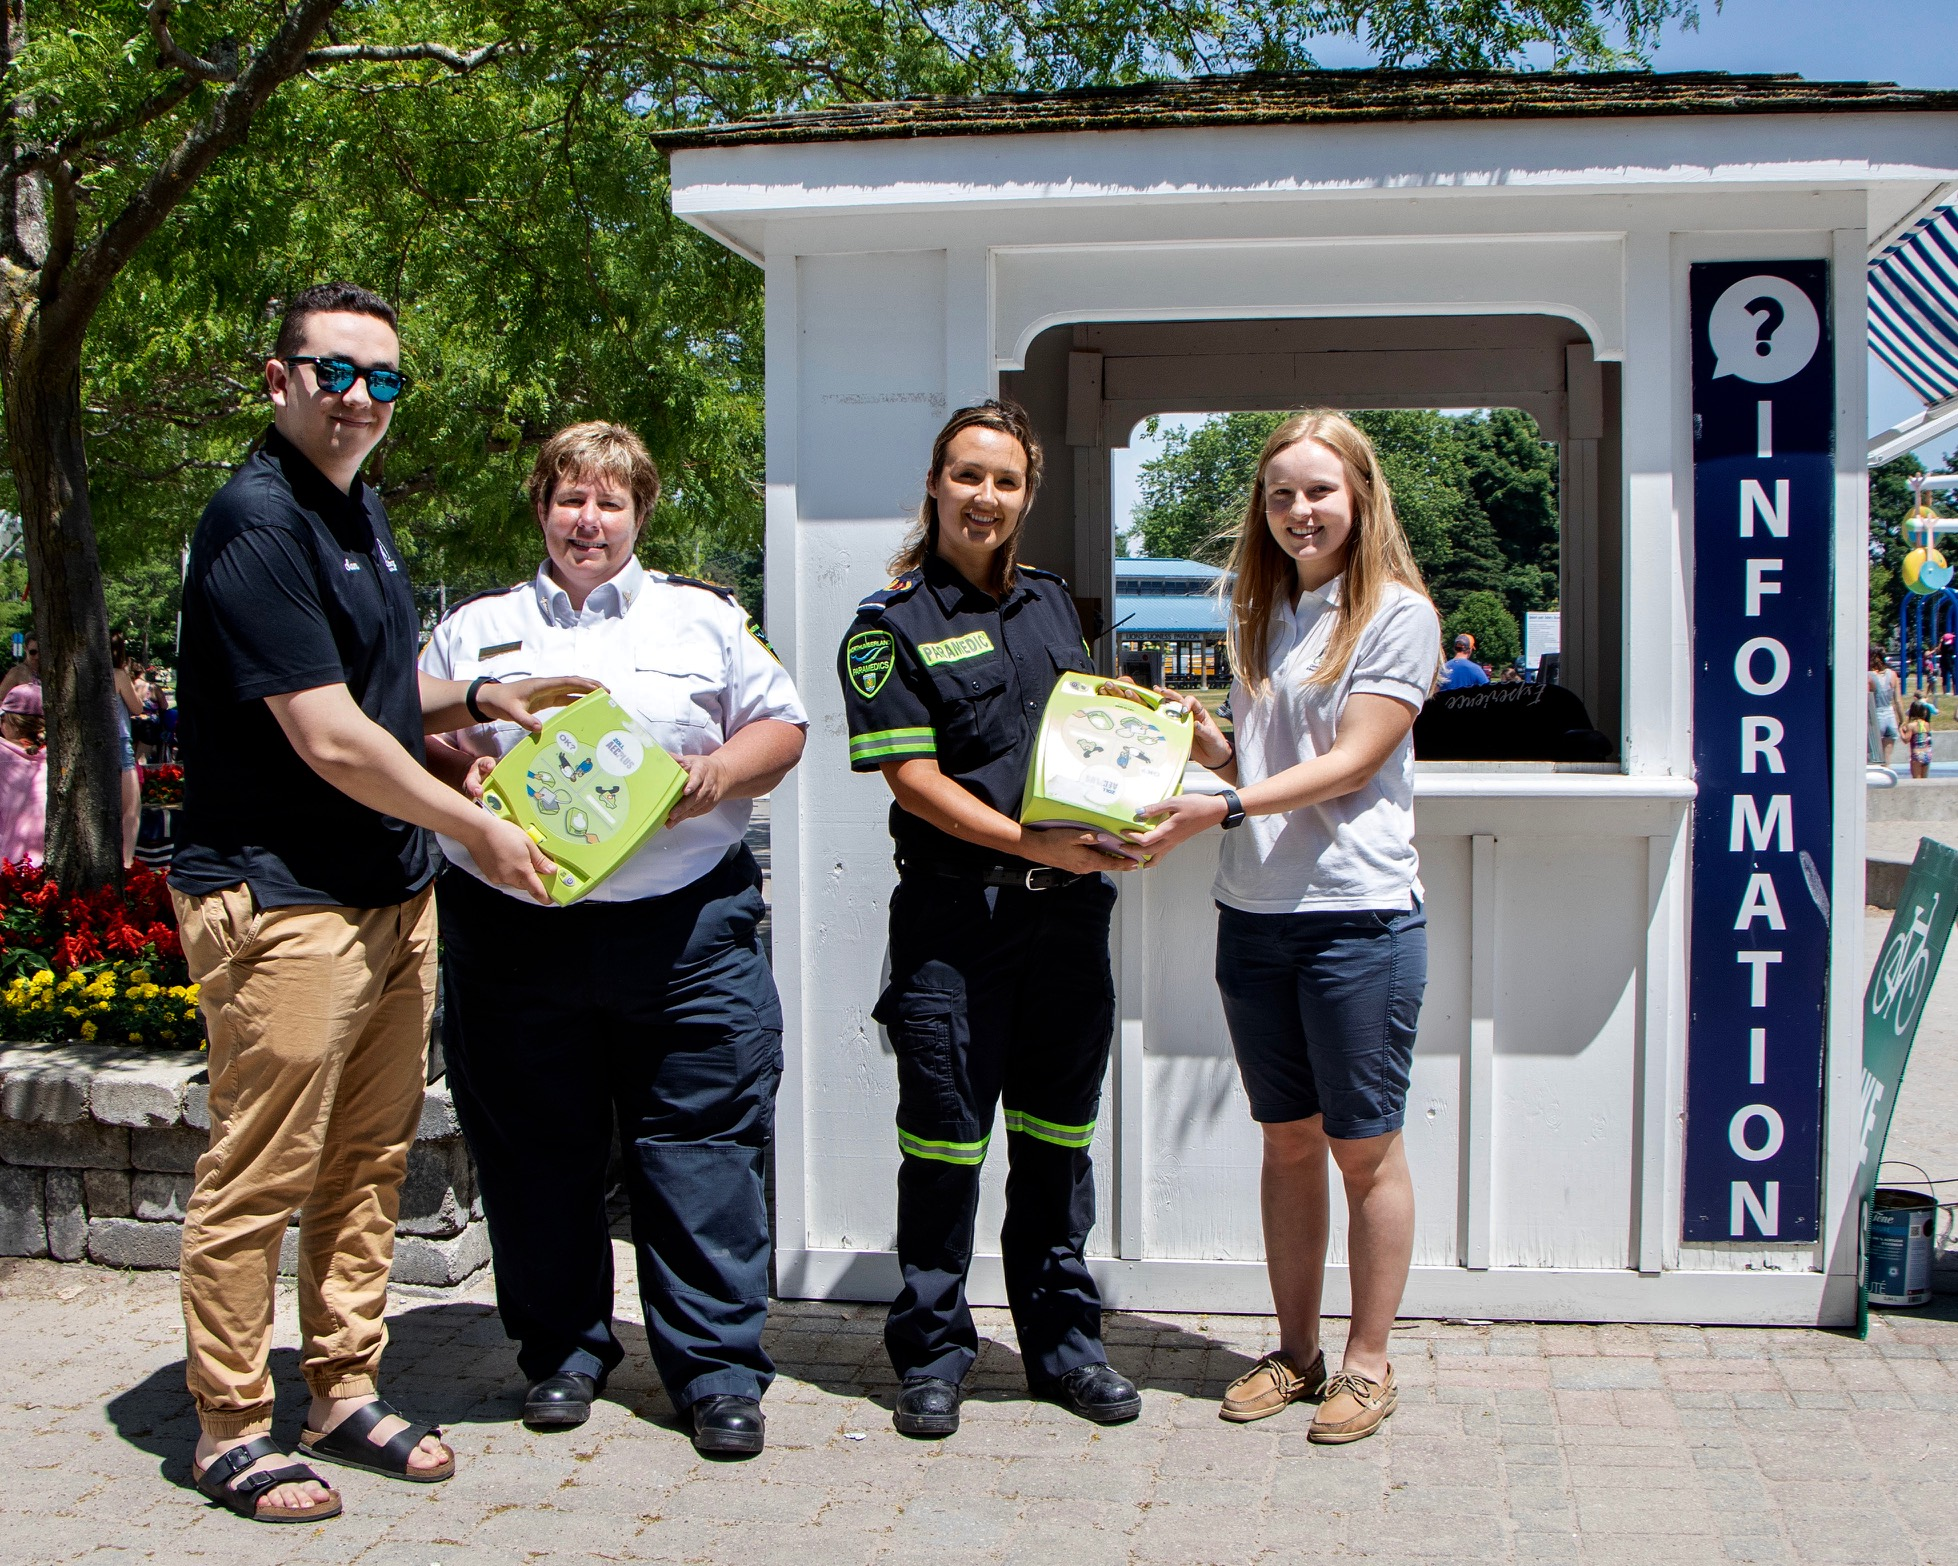 From left, Town of Cobourg Experience Ambassador Sam Brown, Northumberland Paramedics Deputy Chief Susan Brown, paramedic Ersie Cornish and Victoria Park Campground attendant Diana May.